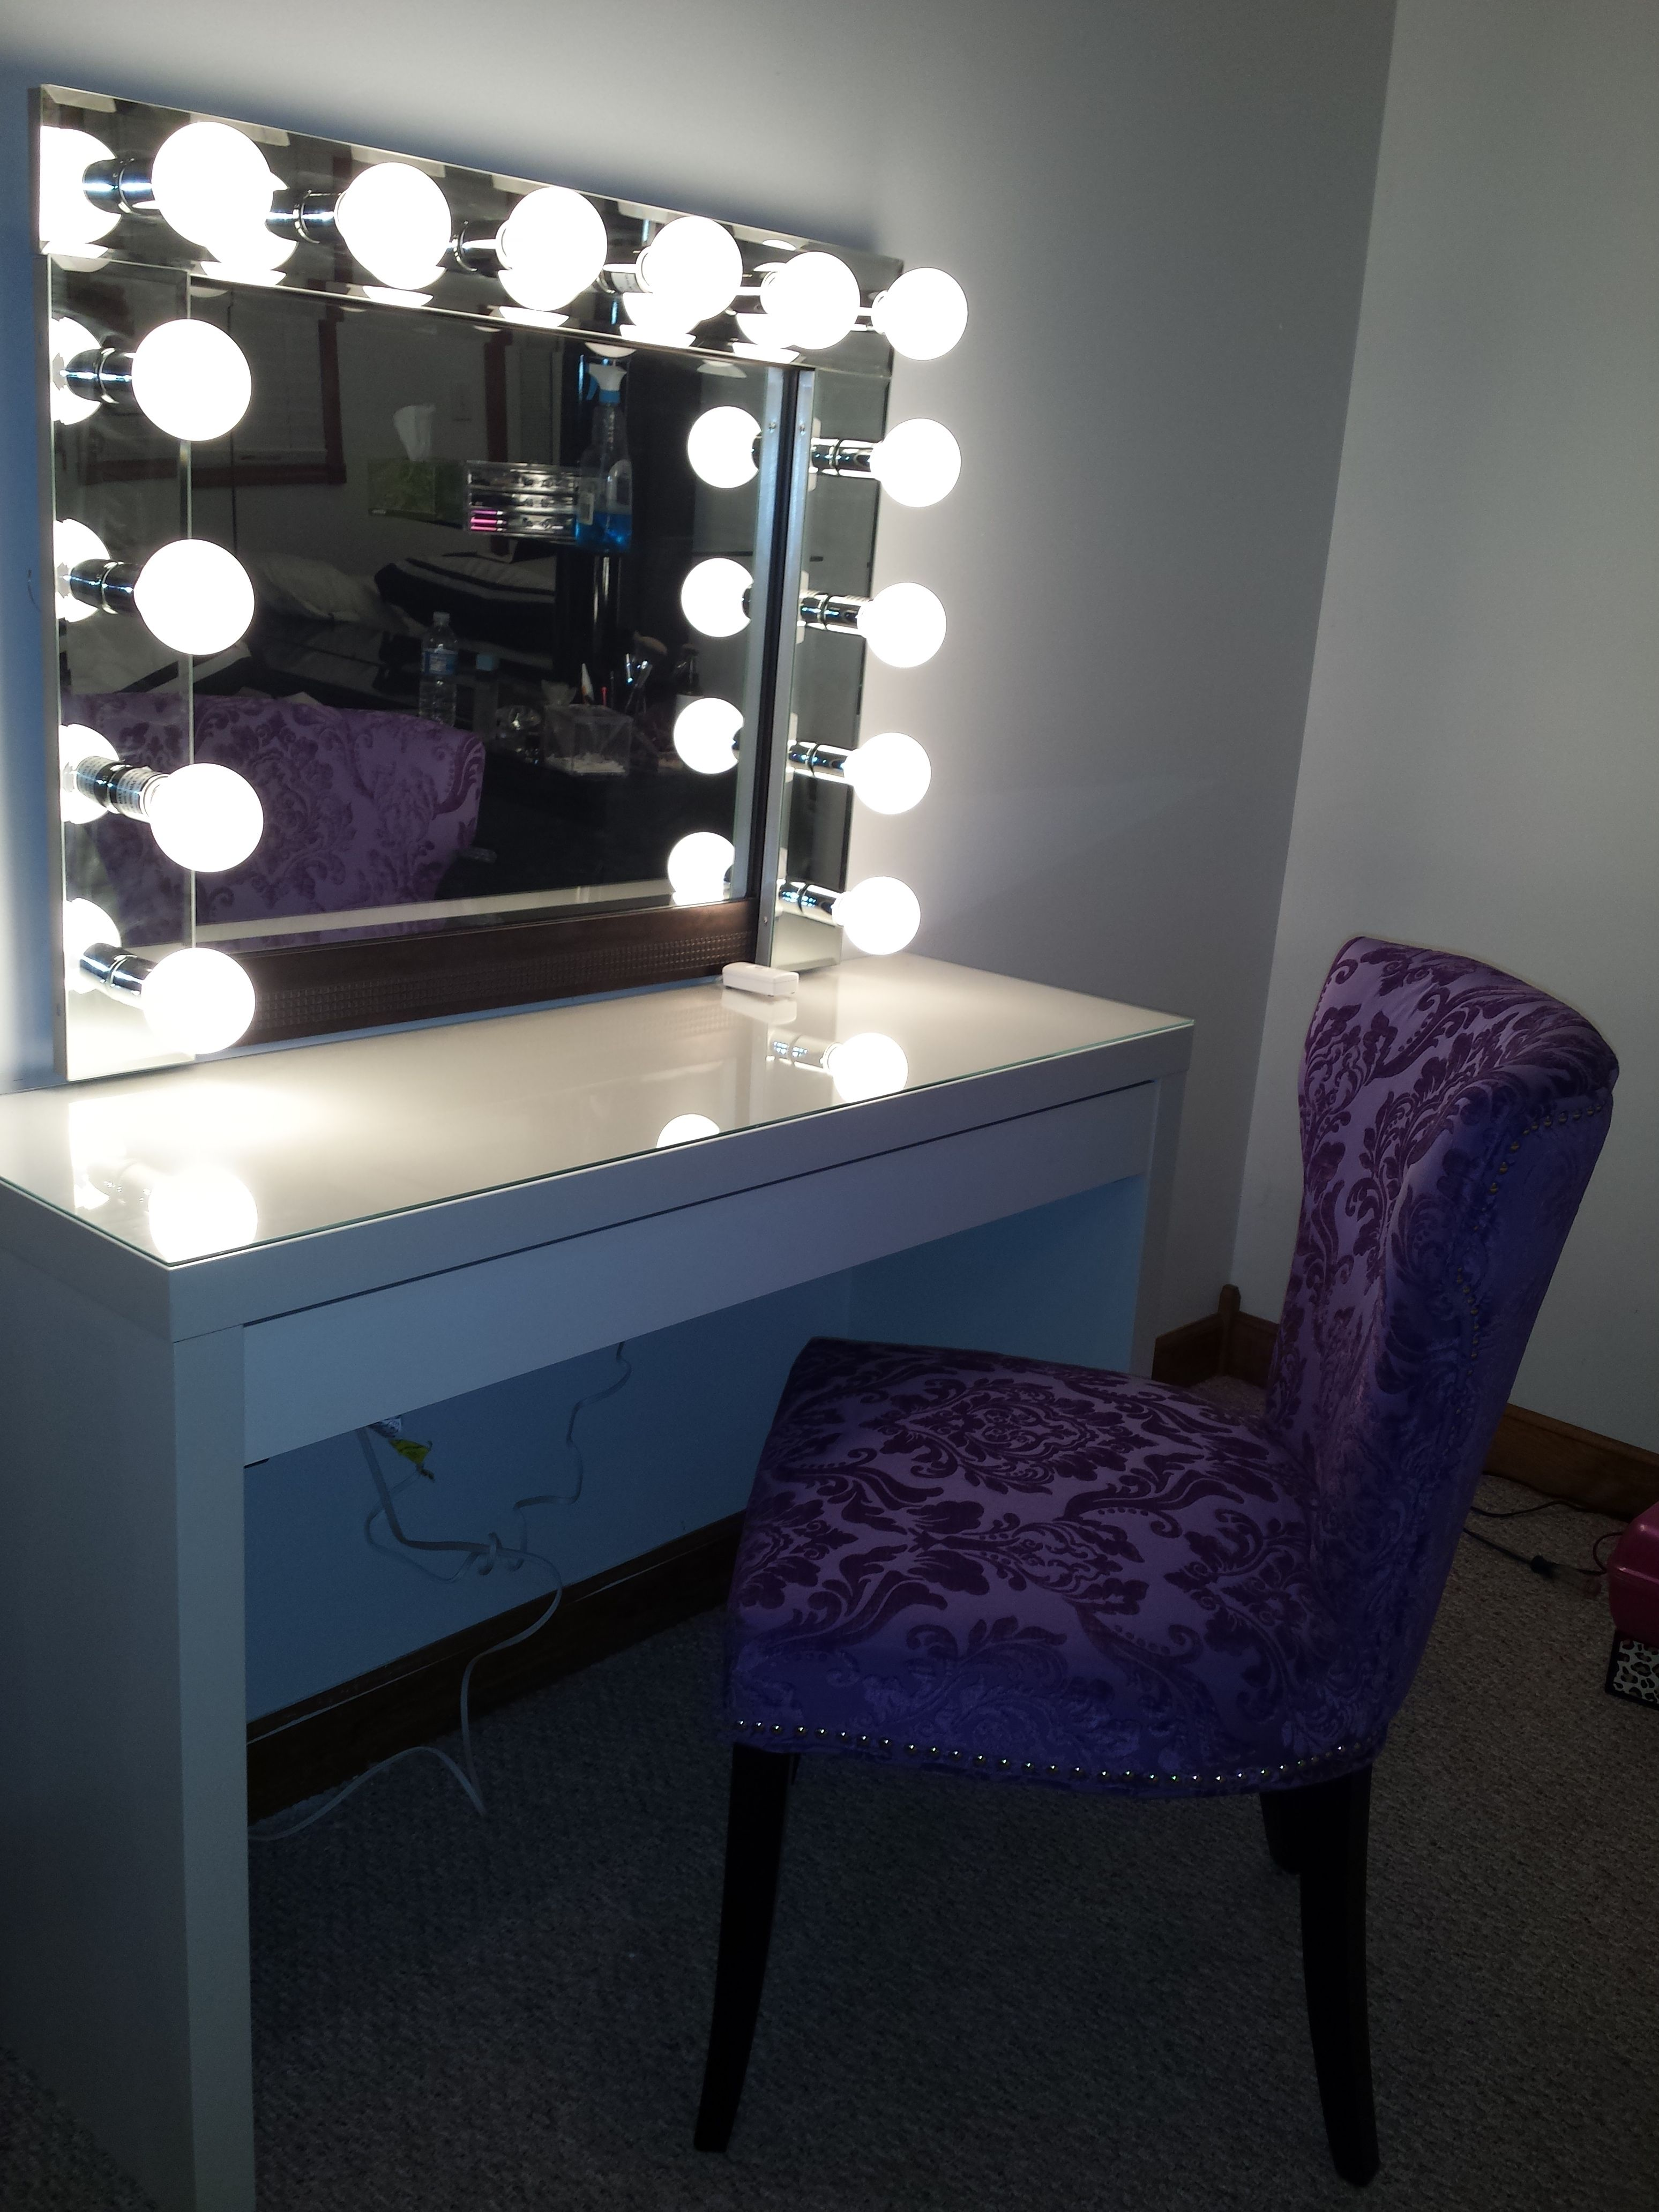 Pin By Christie Santelle On My Projects Diy Vanity Mirror Diy